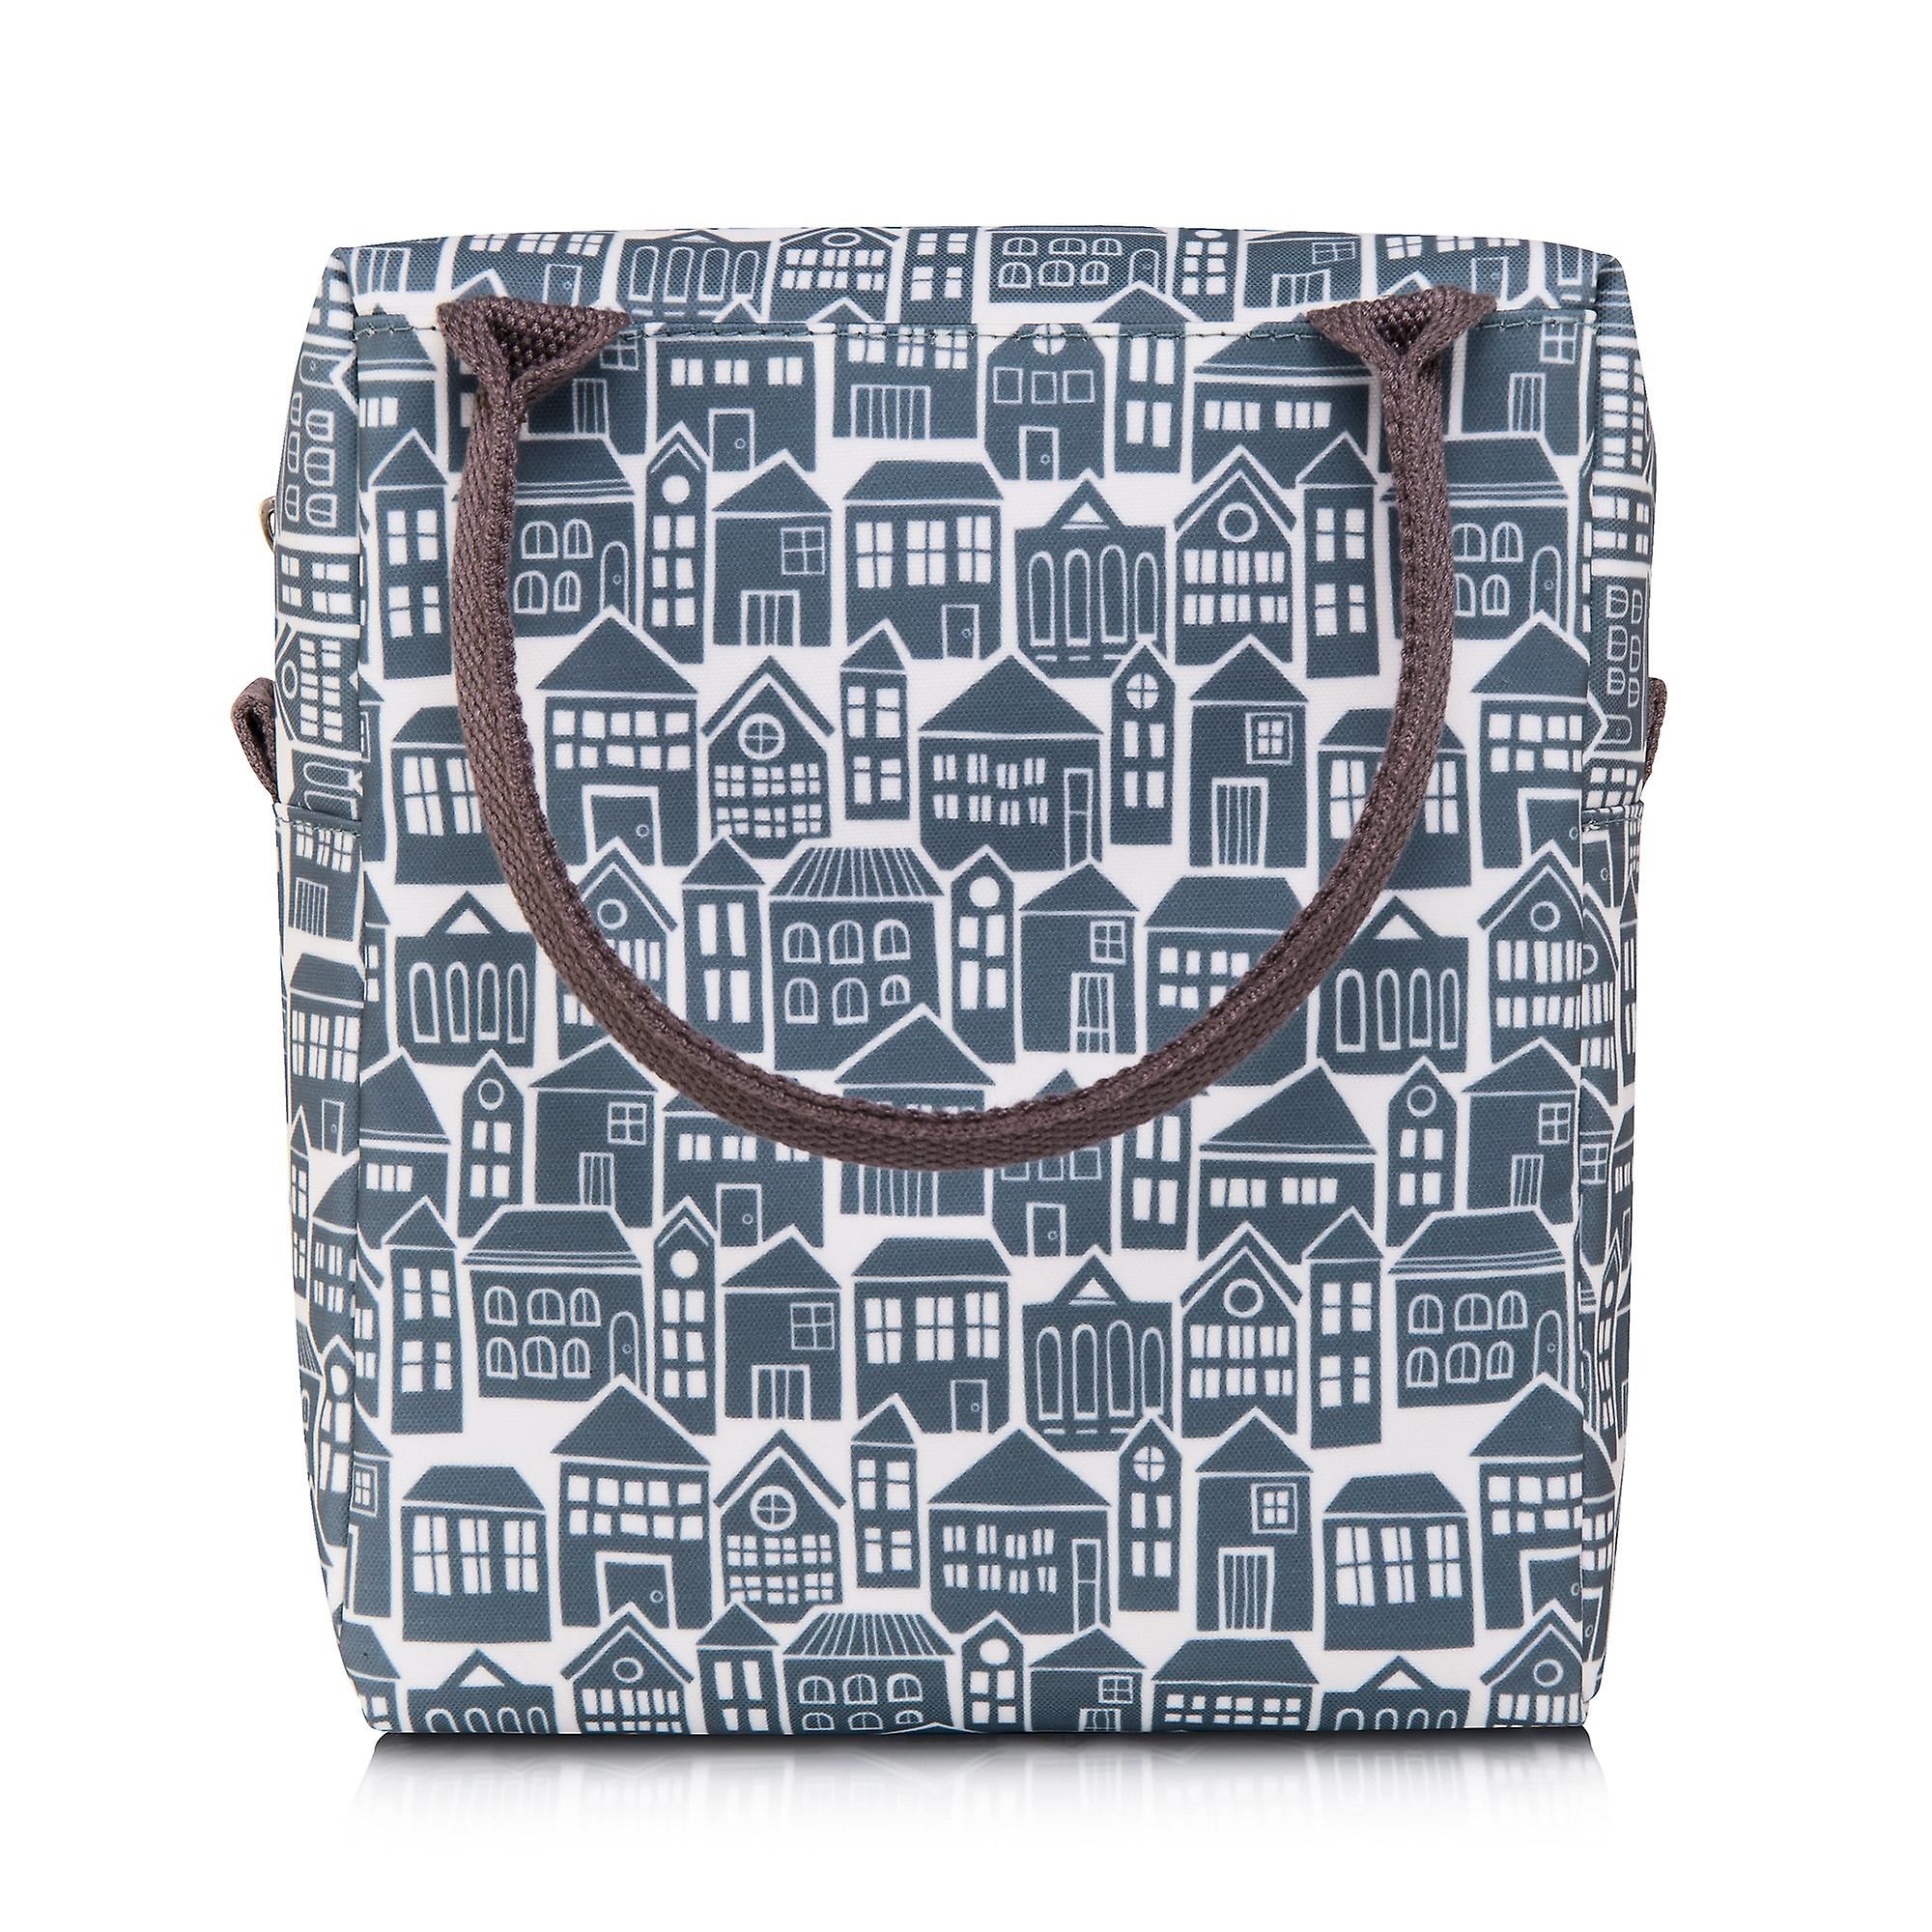 Nicky James About Town Adult Lunchbag